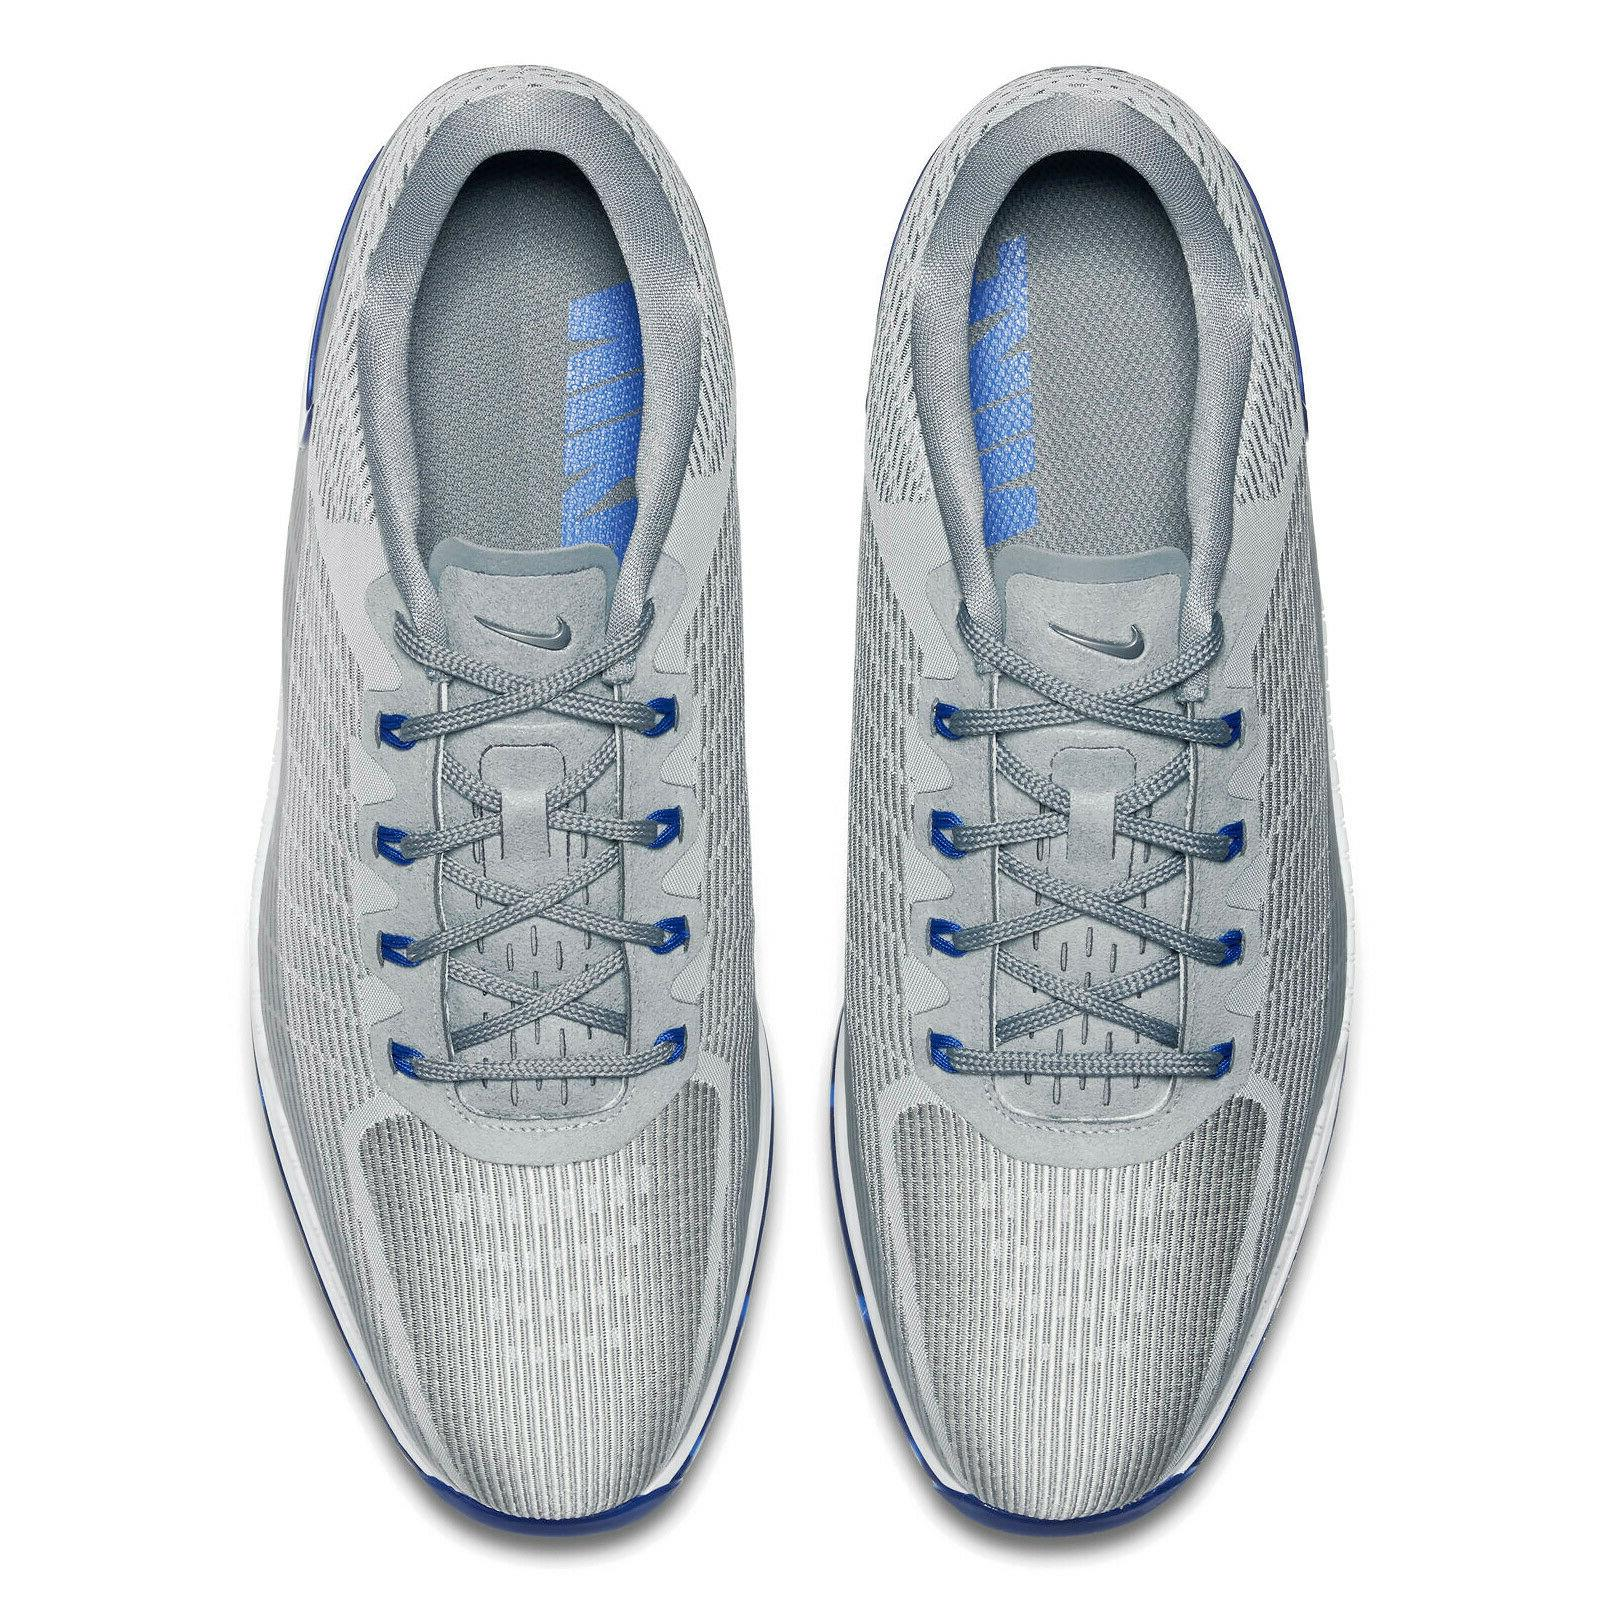 Nike Mens Cleats - Pick Size